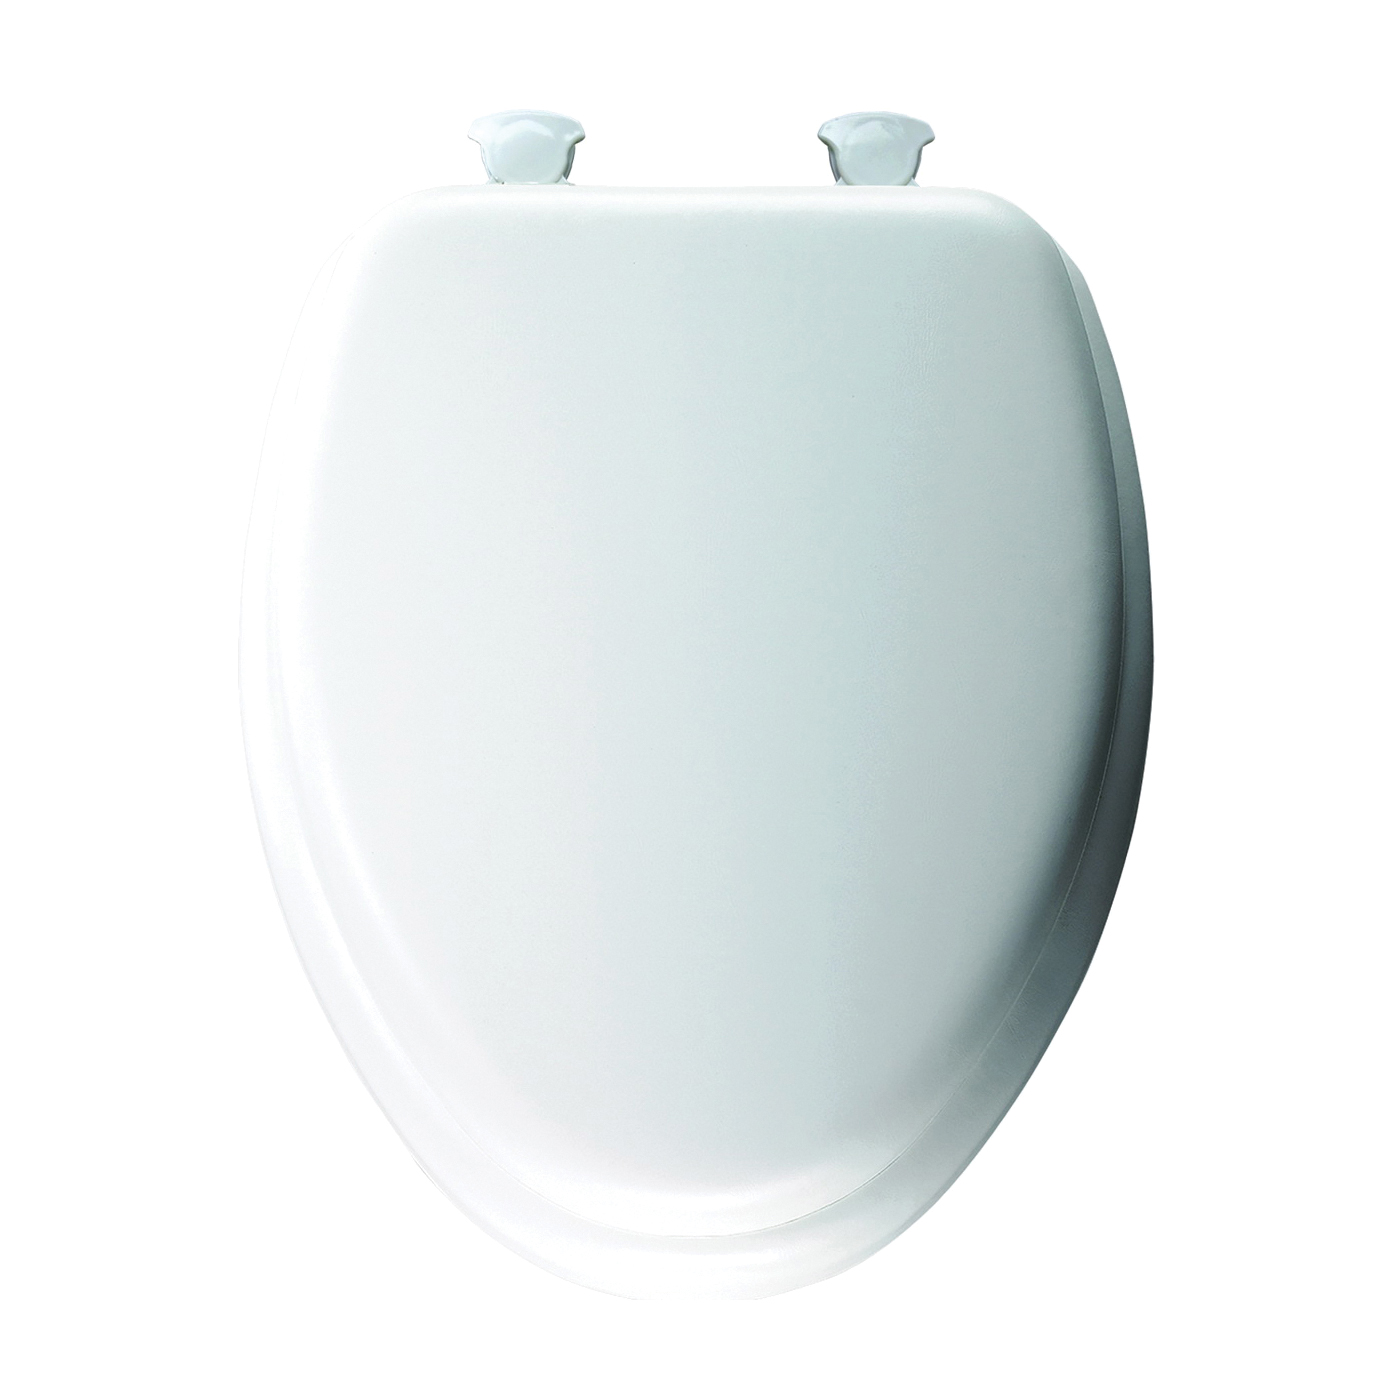 Picture of Mayfair 113EC-00 Toilet Seat with Cover, Elongated, Vinyl/Wood, White, Twist Hinge